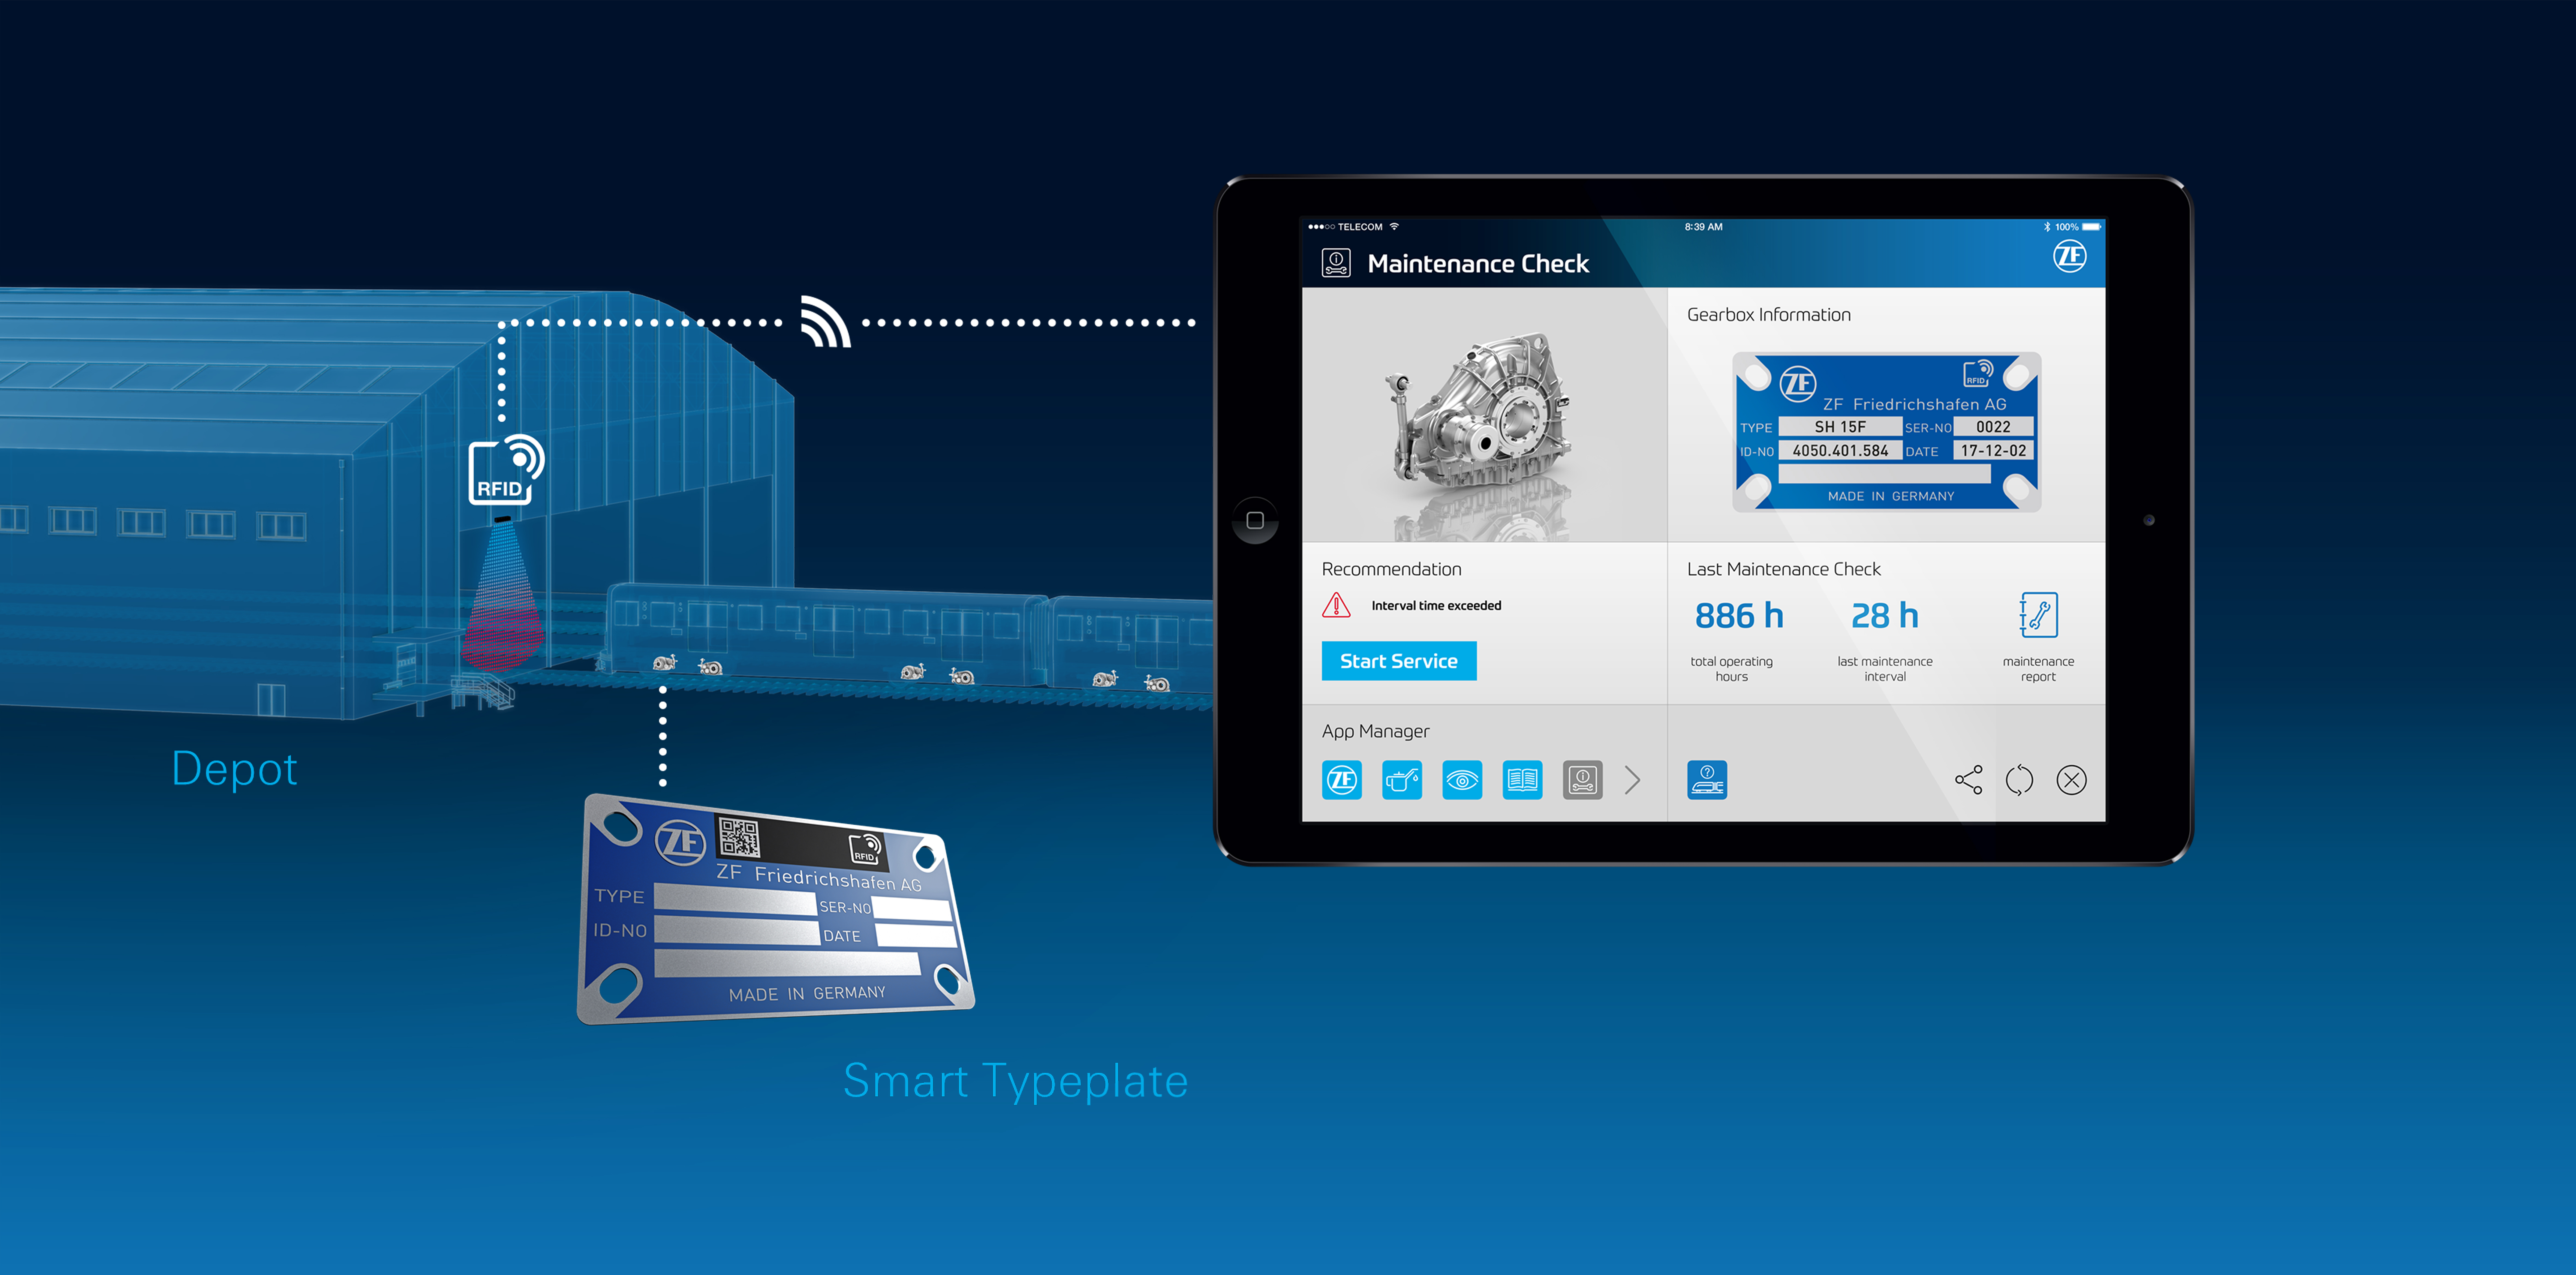 ZF Smart Typeplate for an intelligent fleet management and maintenance planning for rail vehicles